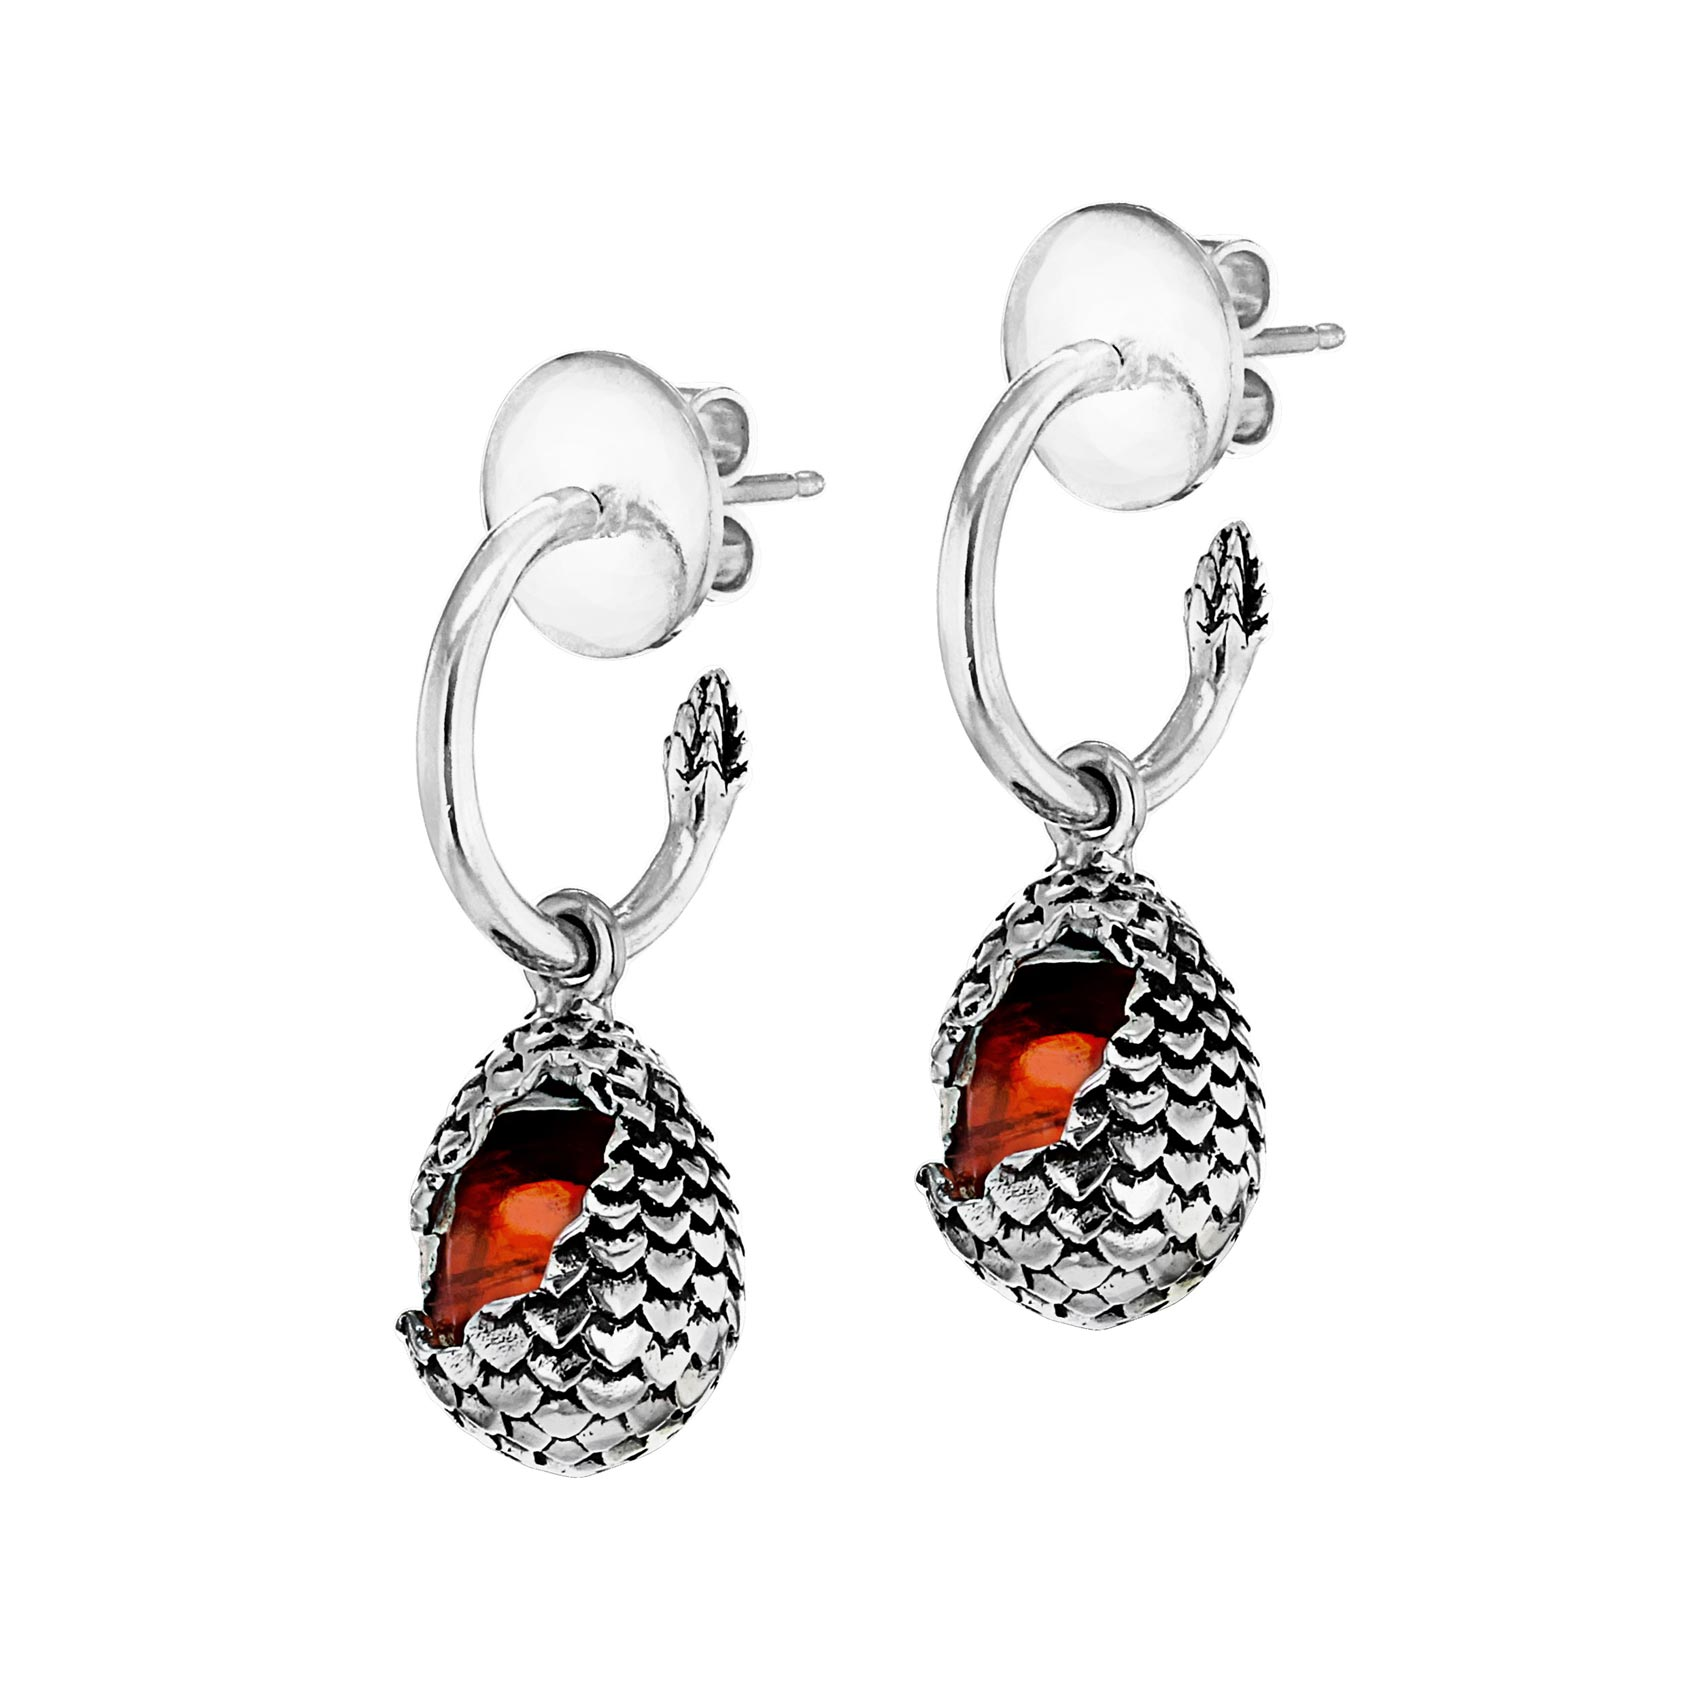 Dragonstone Earrings